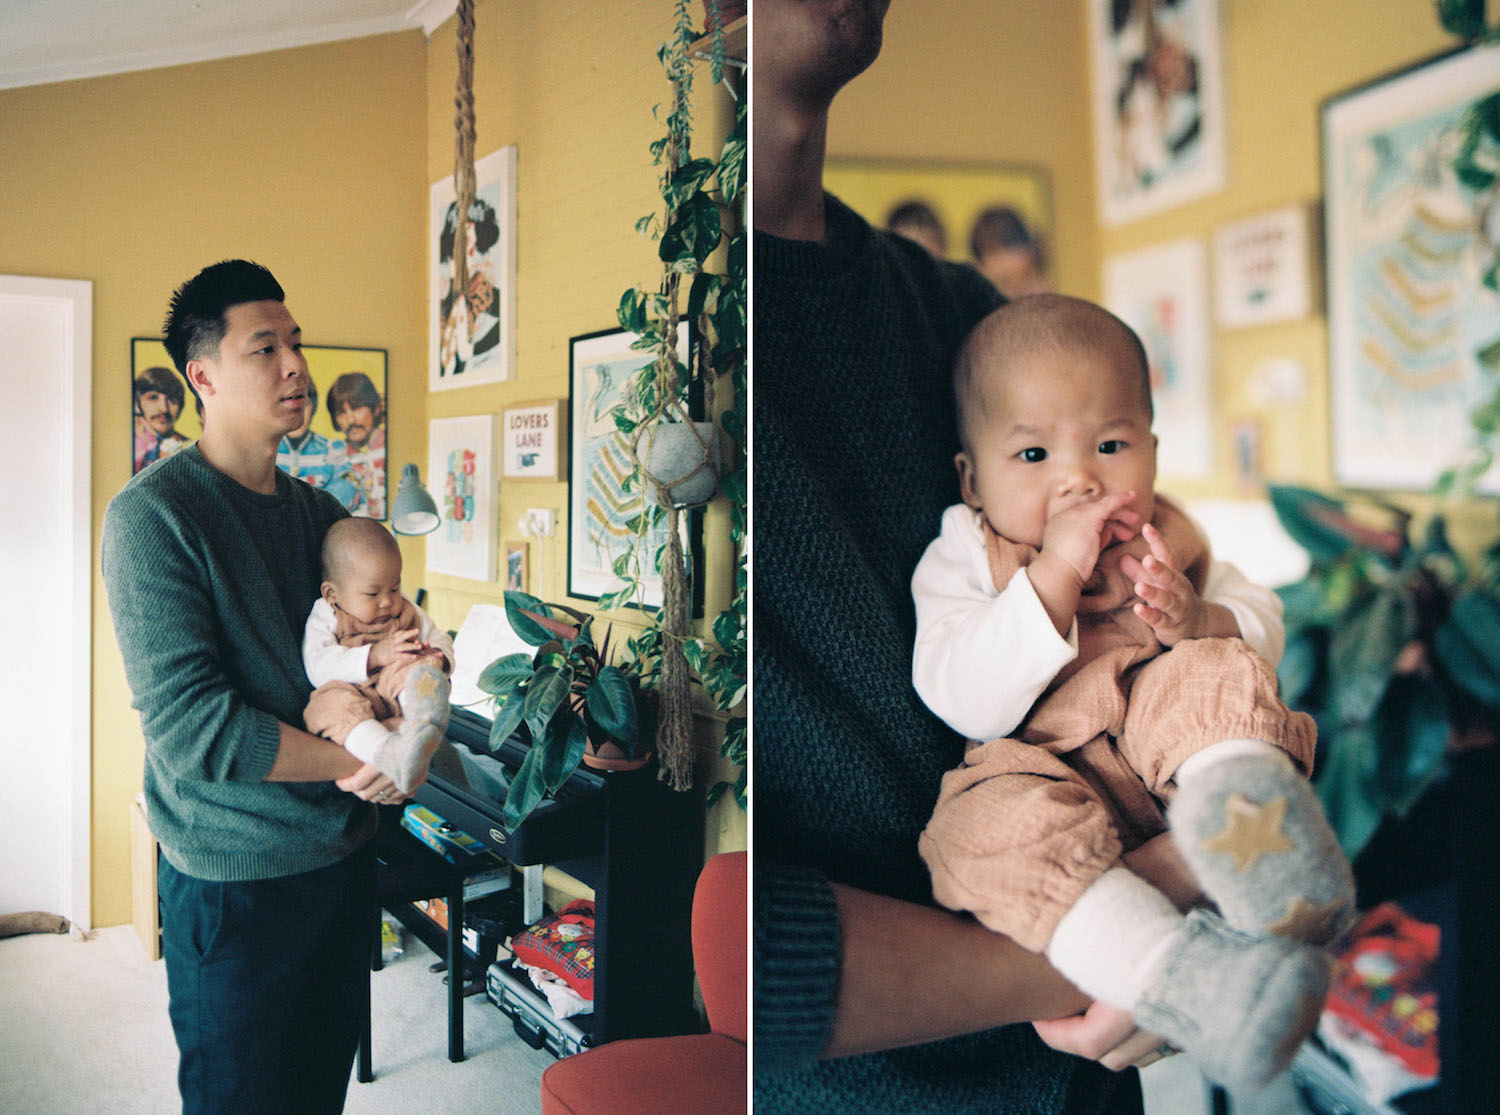 An analogue portrait of Jinn & Alexa during a lifestyle family photo session in Wembley, Western Australia.